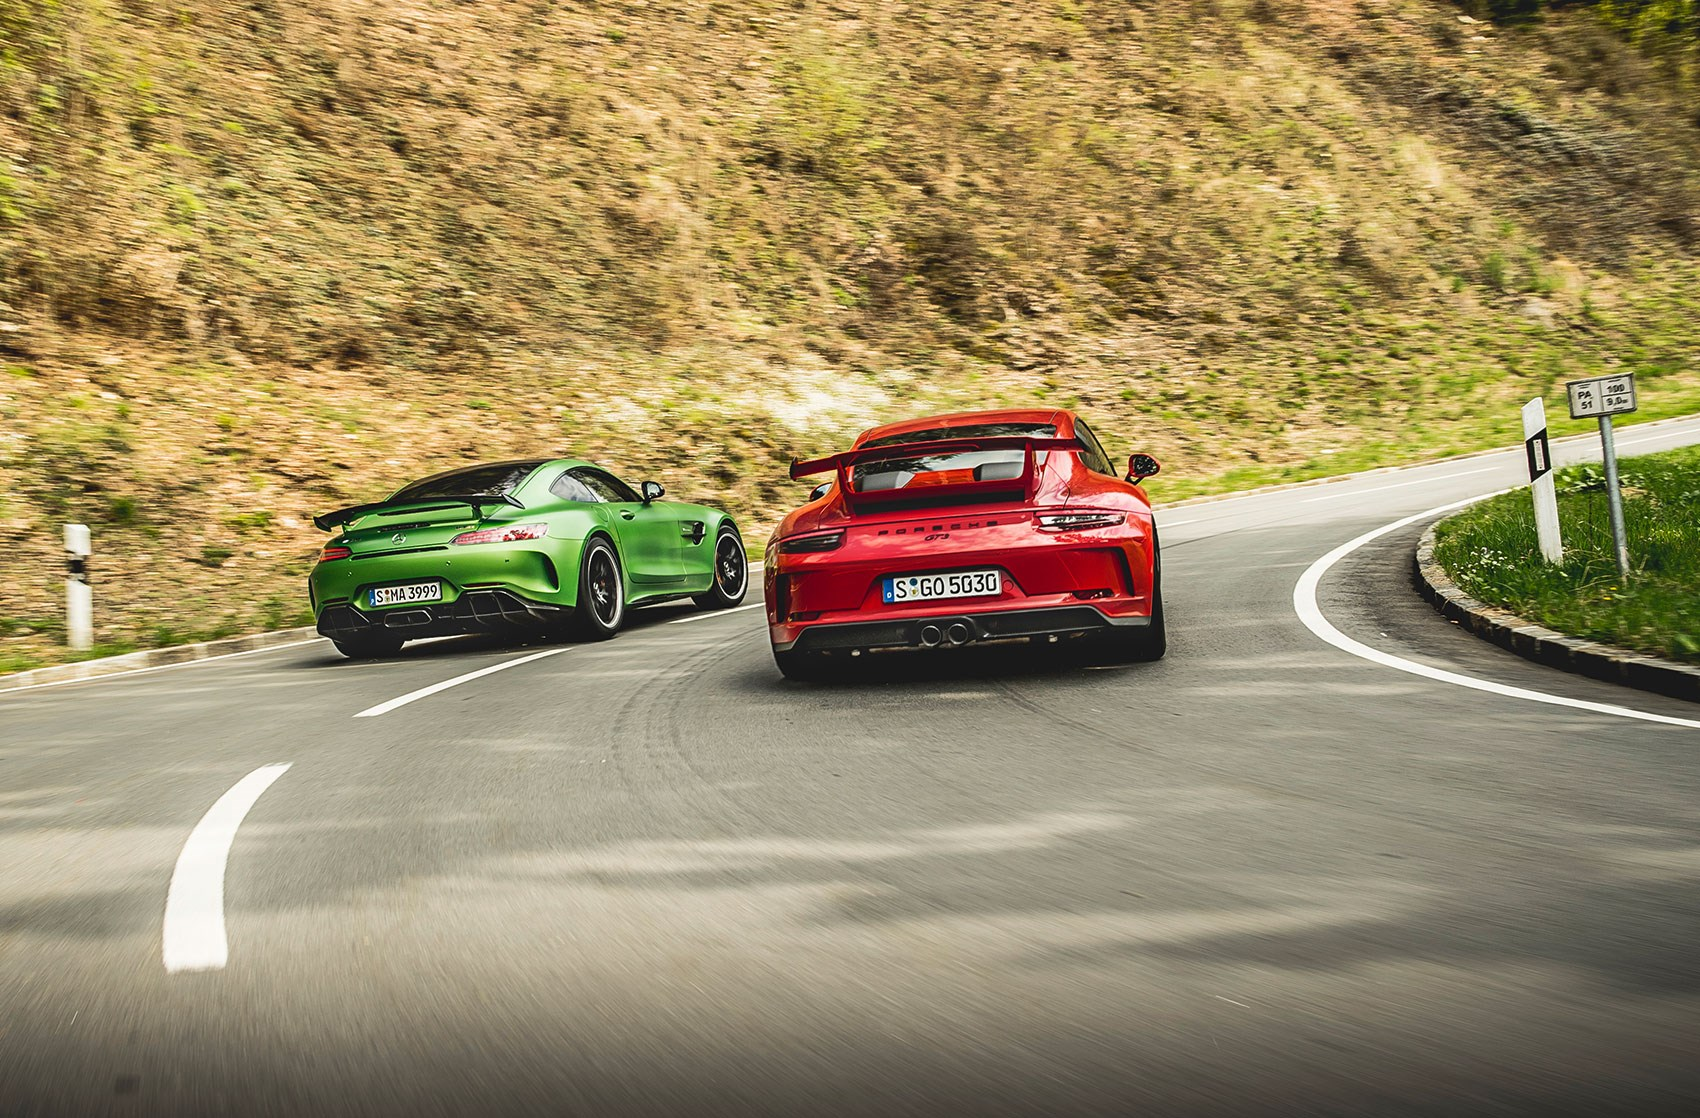 mercedes benz sls amg vs nissan gtr with Mercedes Amg Gt R Vs Porsche 911 Gt3 Twin Test Review 2017 on X2m6gd2 further Nissan GT R NISMO GT3 moreover V8 Supercars Adelaide Garth Tander Rick Kelly And Todd Kelly Pile Up as well Ferrari Logo   Wallpaper For Mobile as well Ti2O 1PAIxk.